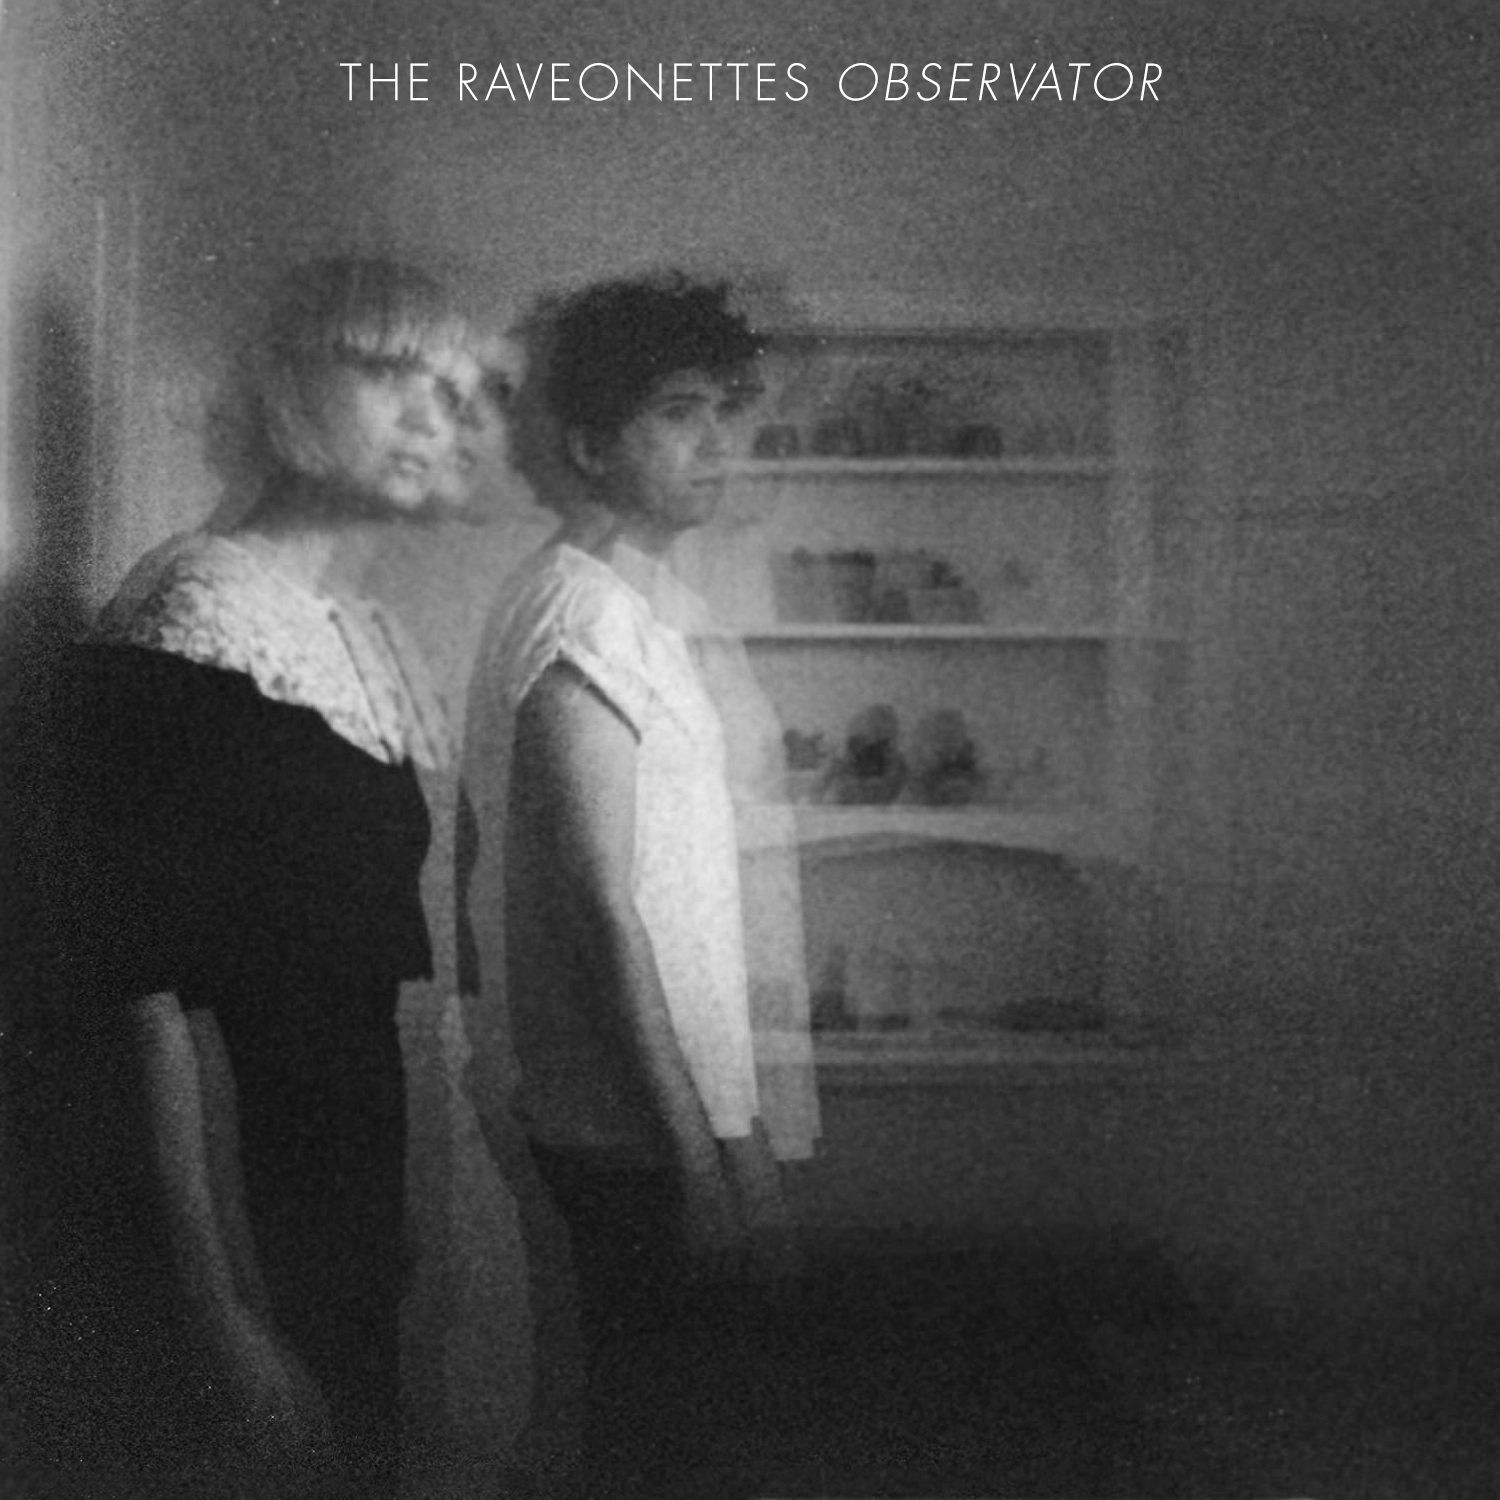 observator raveonettes16 New Music: The Raveonettes   Observations